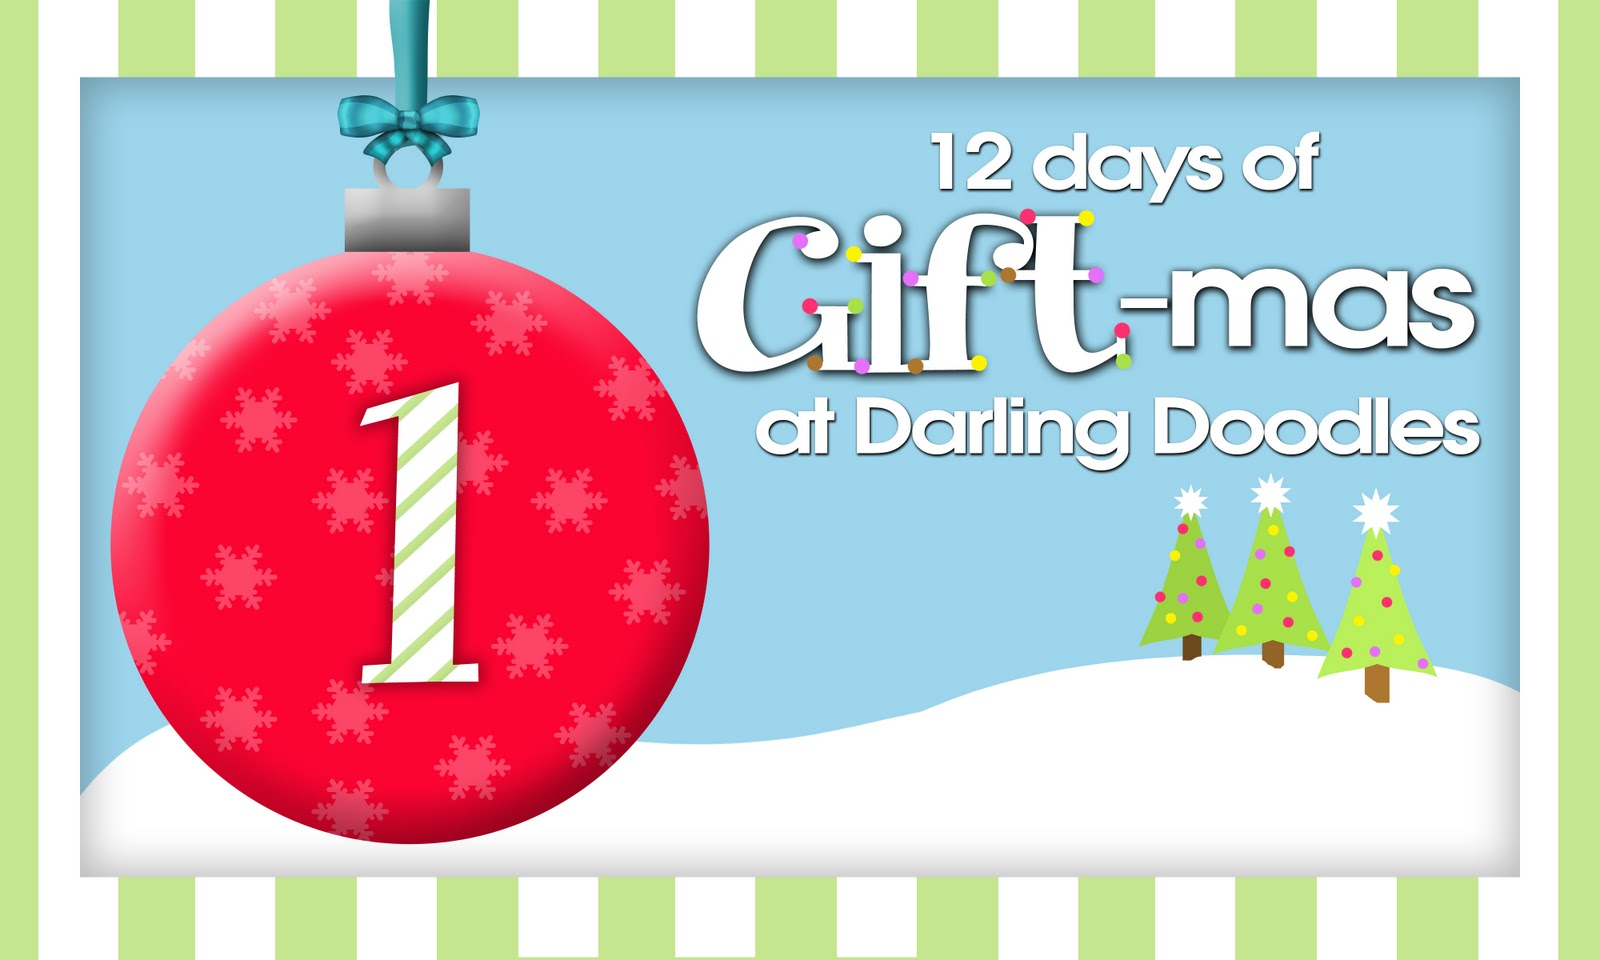 12 Days of Gift-mas, Gift #1 - Darling Doodles